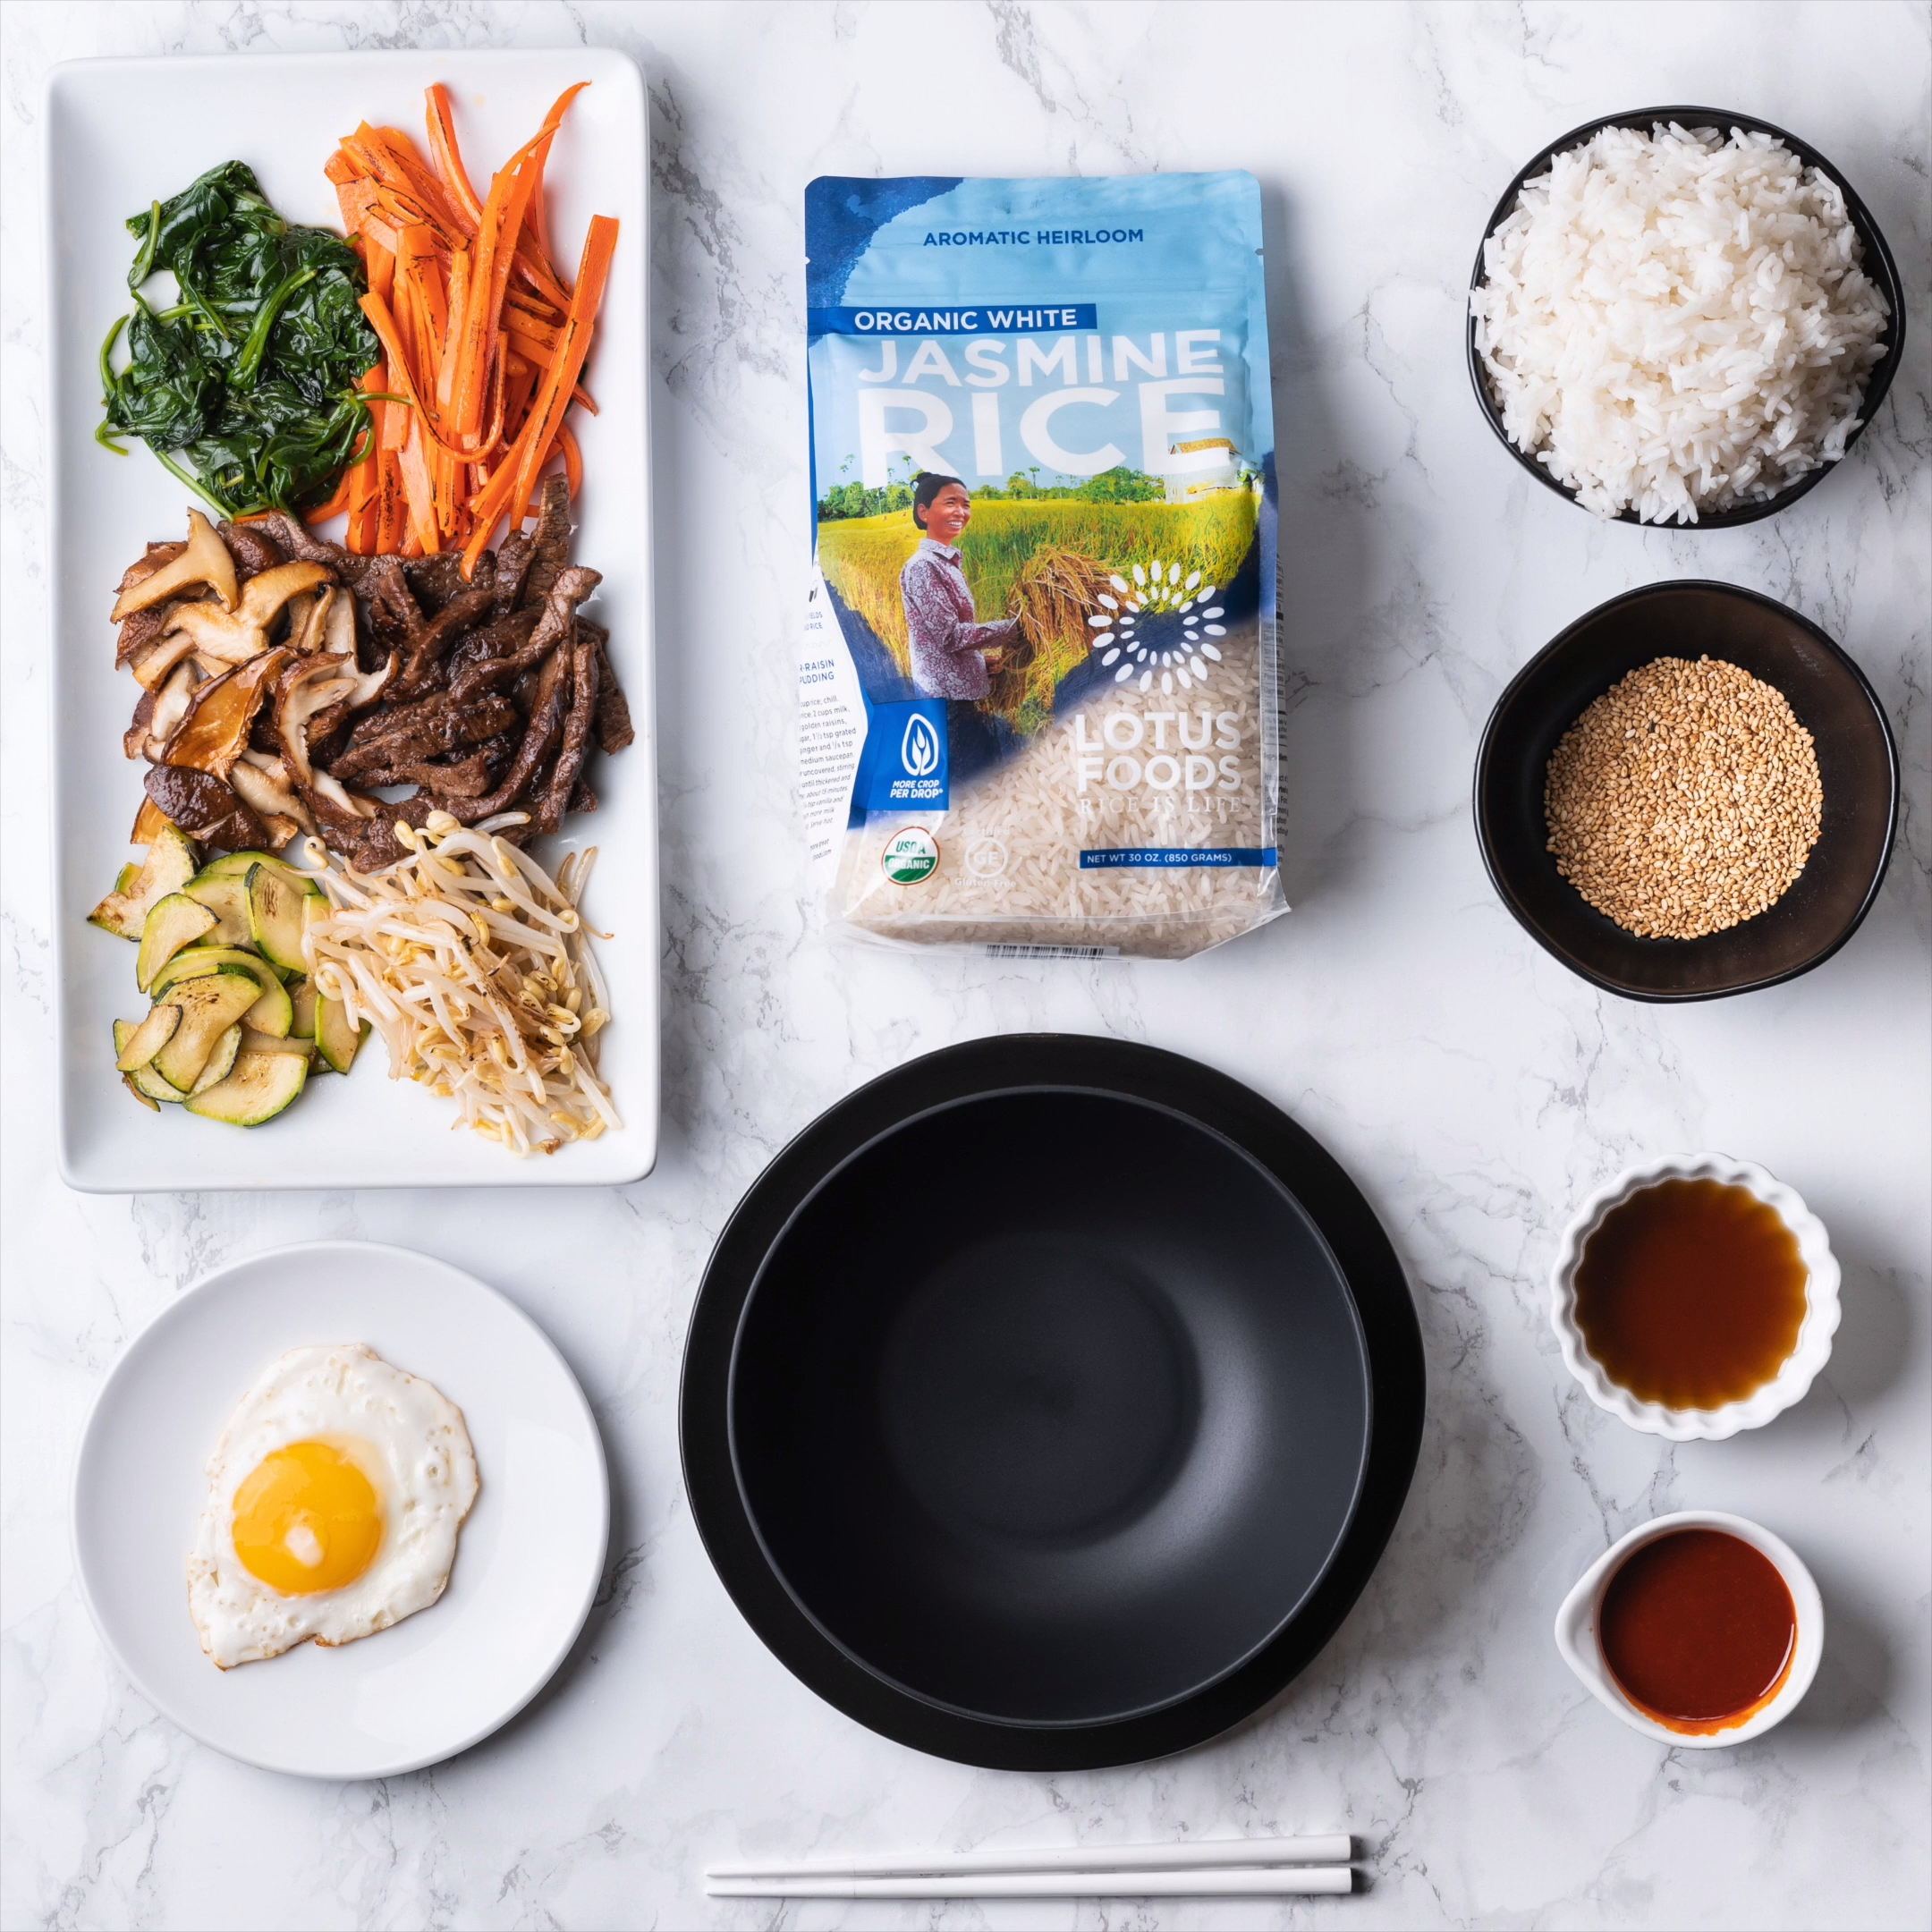 Make your own bibimbap bowl with our Organic Jasmine Rice! This premium variety of Jasmine rice is called Phka Malis, which in Khmer language means beautiful garland of flowers because of its delicate floral aroma. It has a soft, slightly sticky texture and fast cooking time. 📹 @flatlaytoday #lotusfoods #jasminerice #organicrice #bibimbap #bibimbapbowl #morecropperdrop